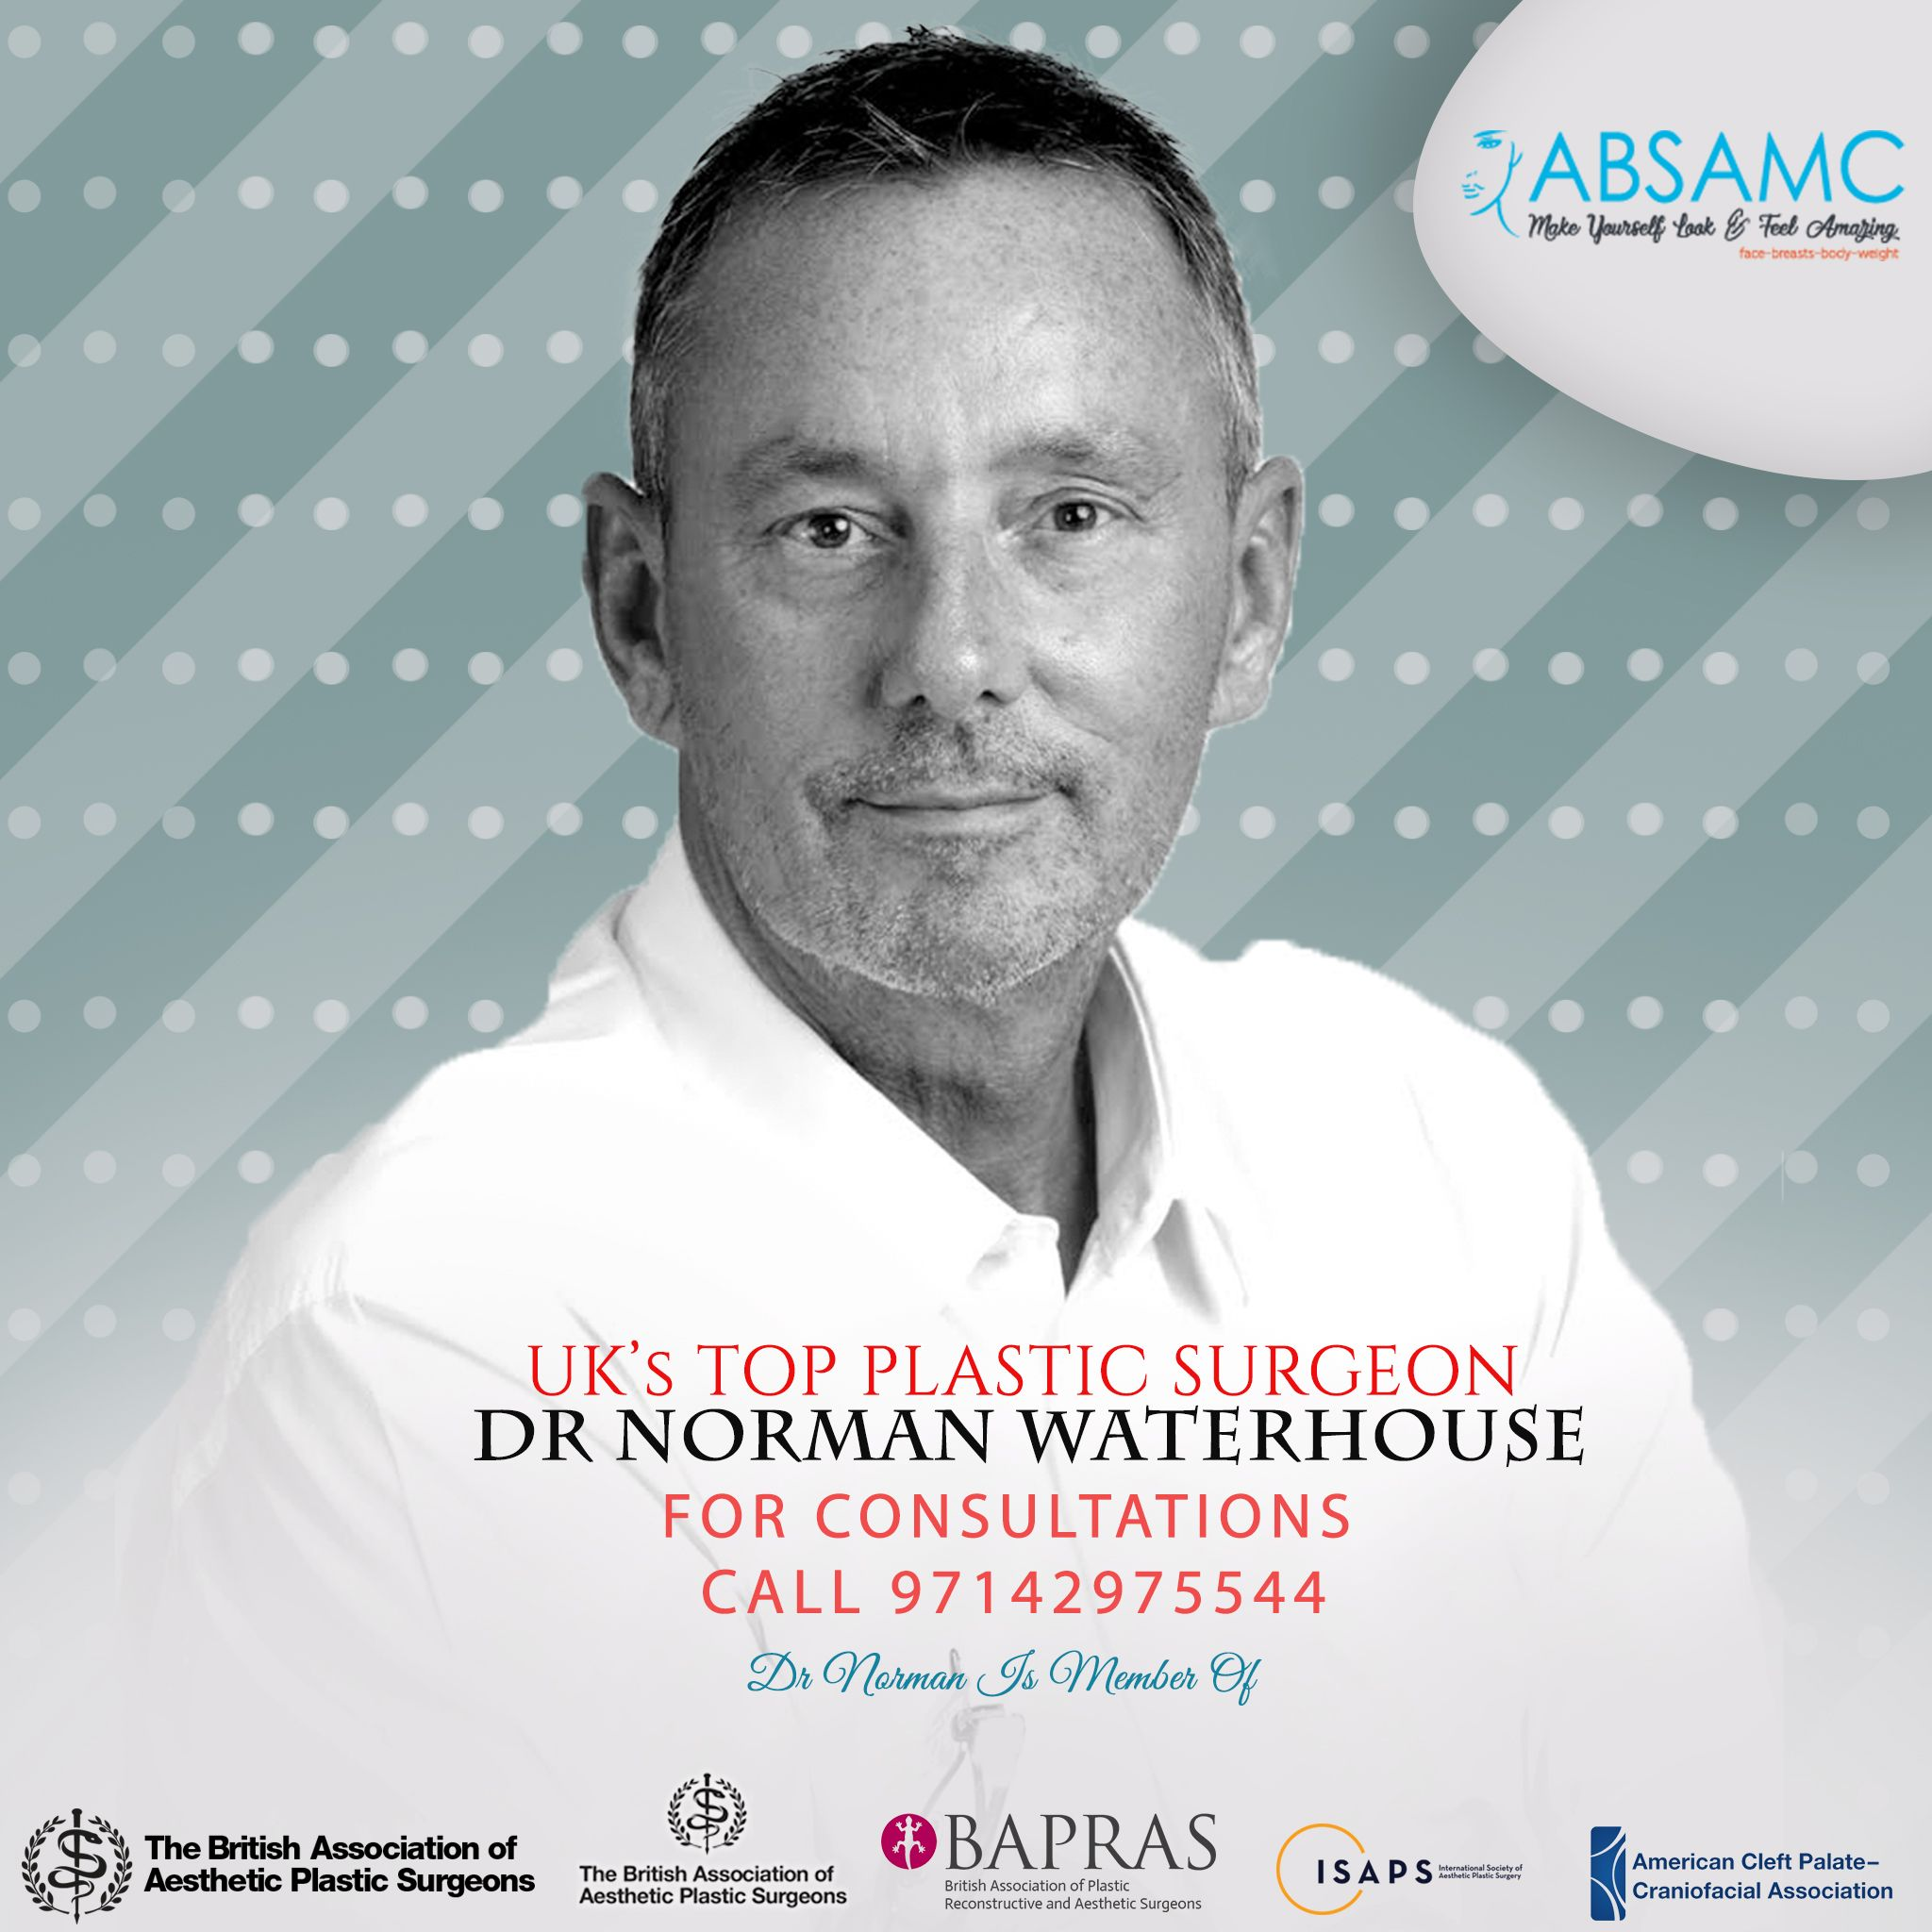 Dr Norman Waterhouse Plastic Surgeon Doctors Top Plastic Surgeons Plastic Surgeon